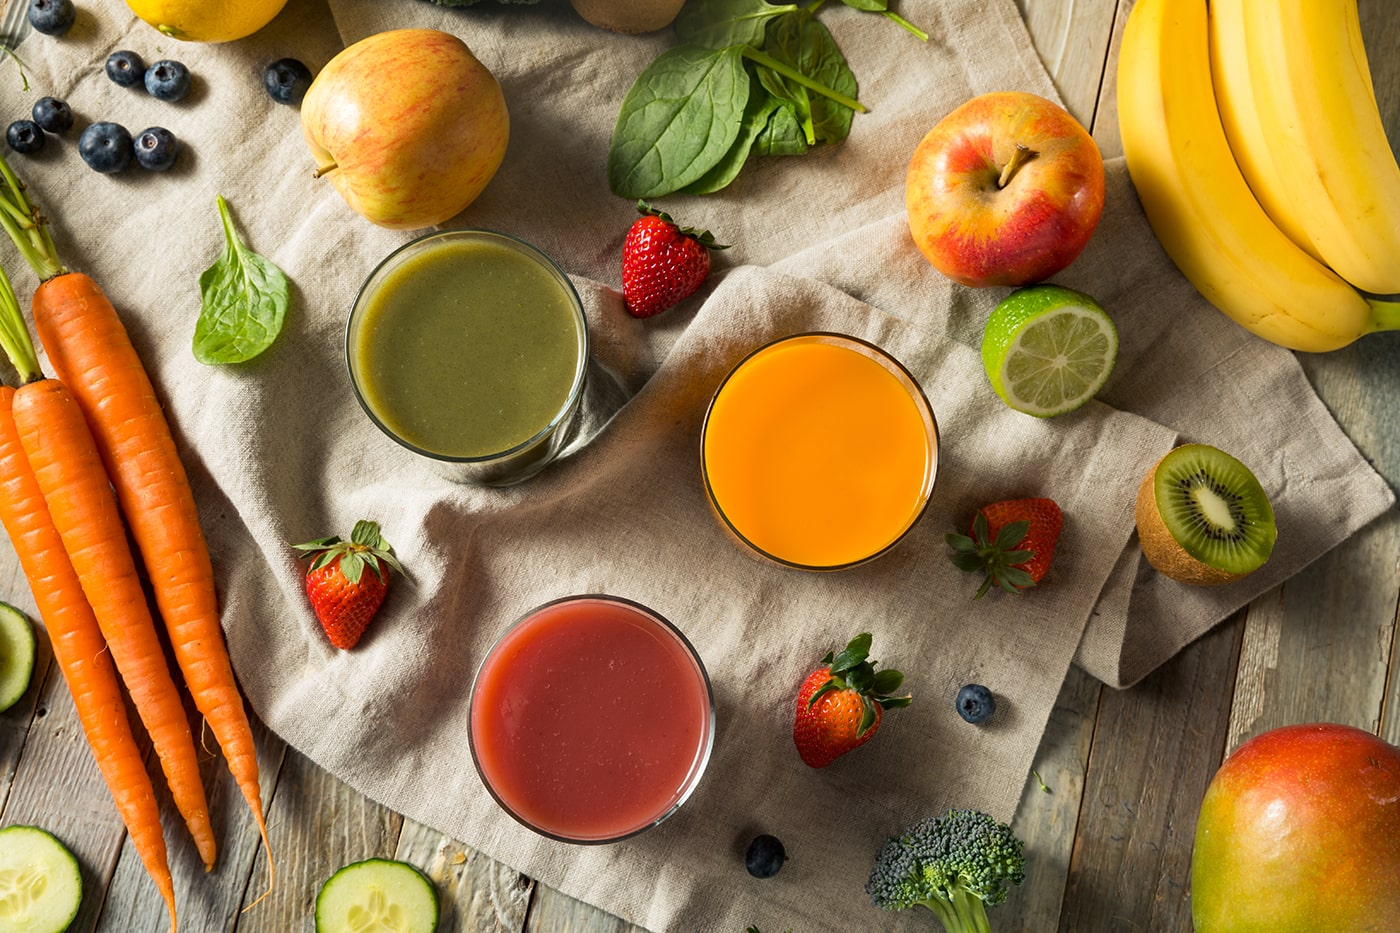 Health fruits, vegetables and juices for detoxes